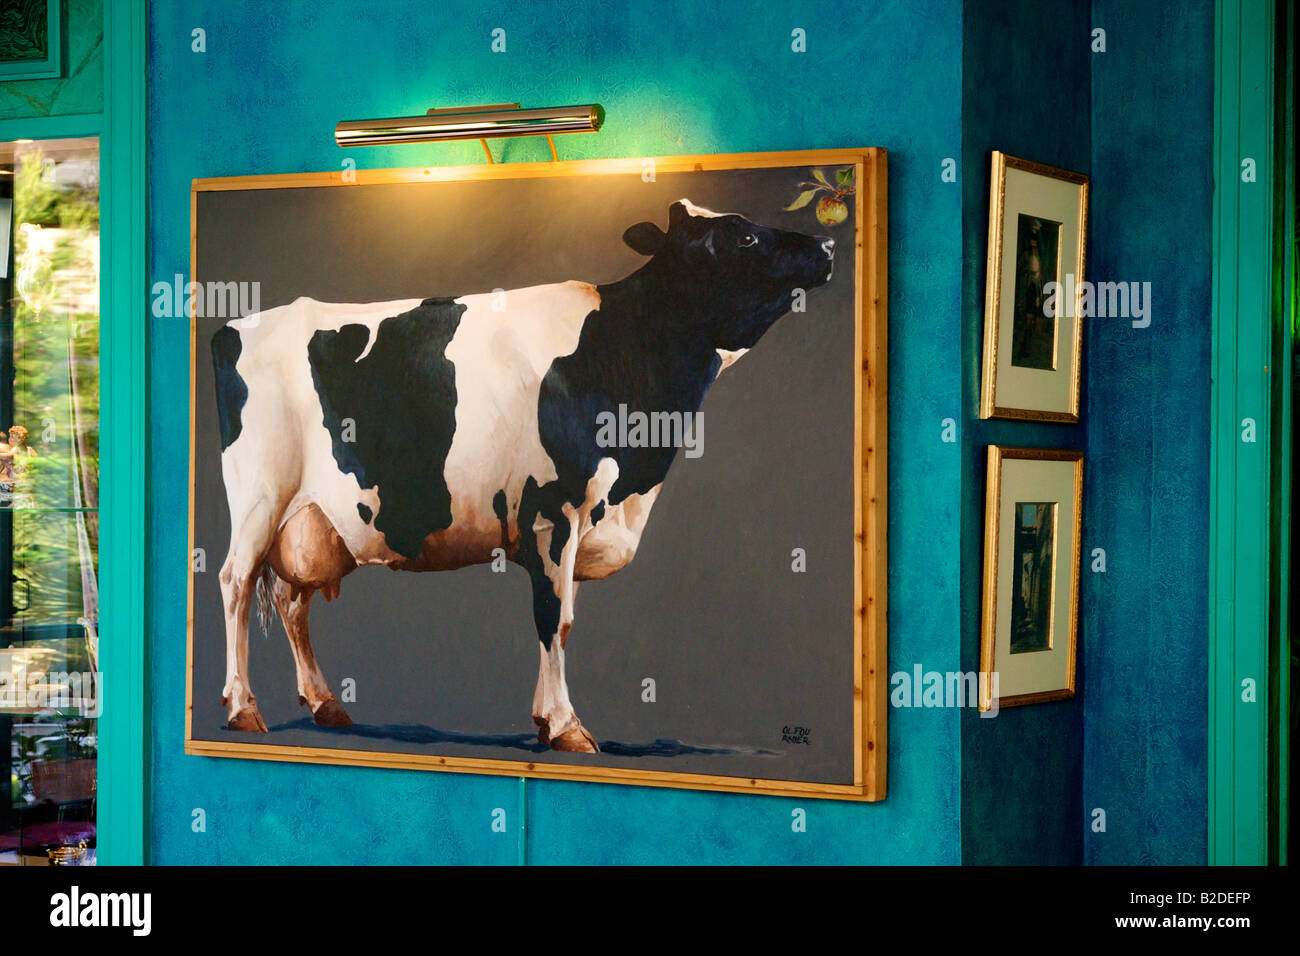 Hotel Saint Christophe in La Baule, the Dining room decor with large painting of a cow - Stock Image